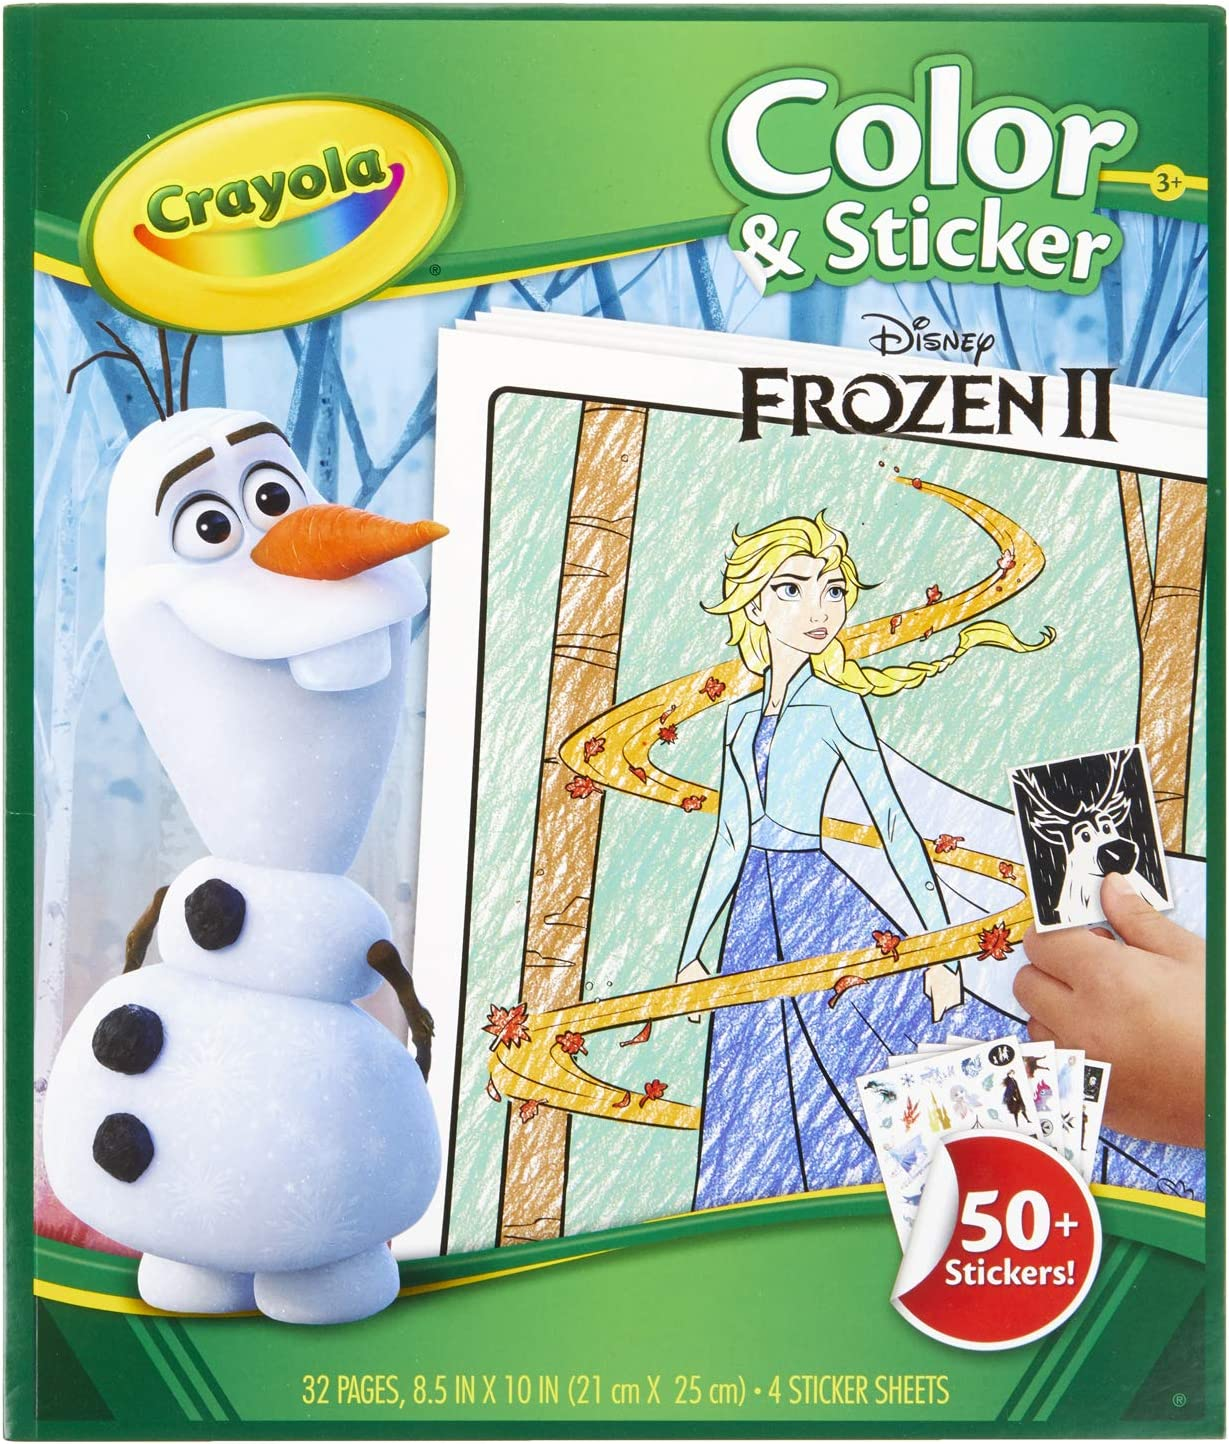 Crayola - Frozen Giant Colouring Pages | 1457x1236